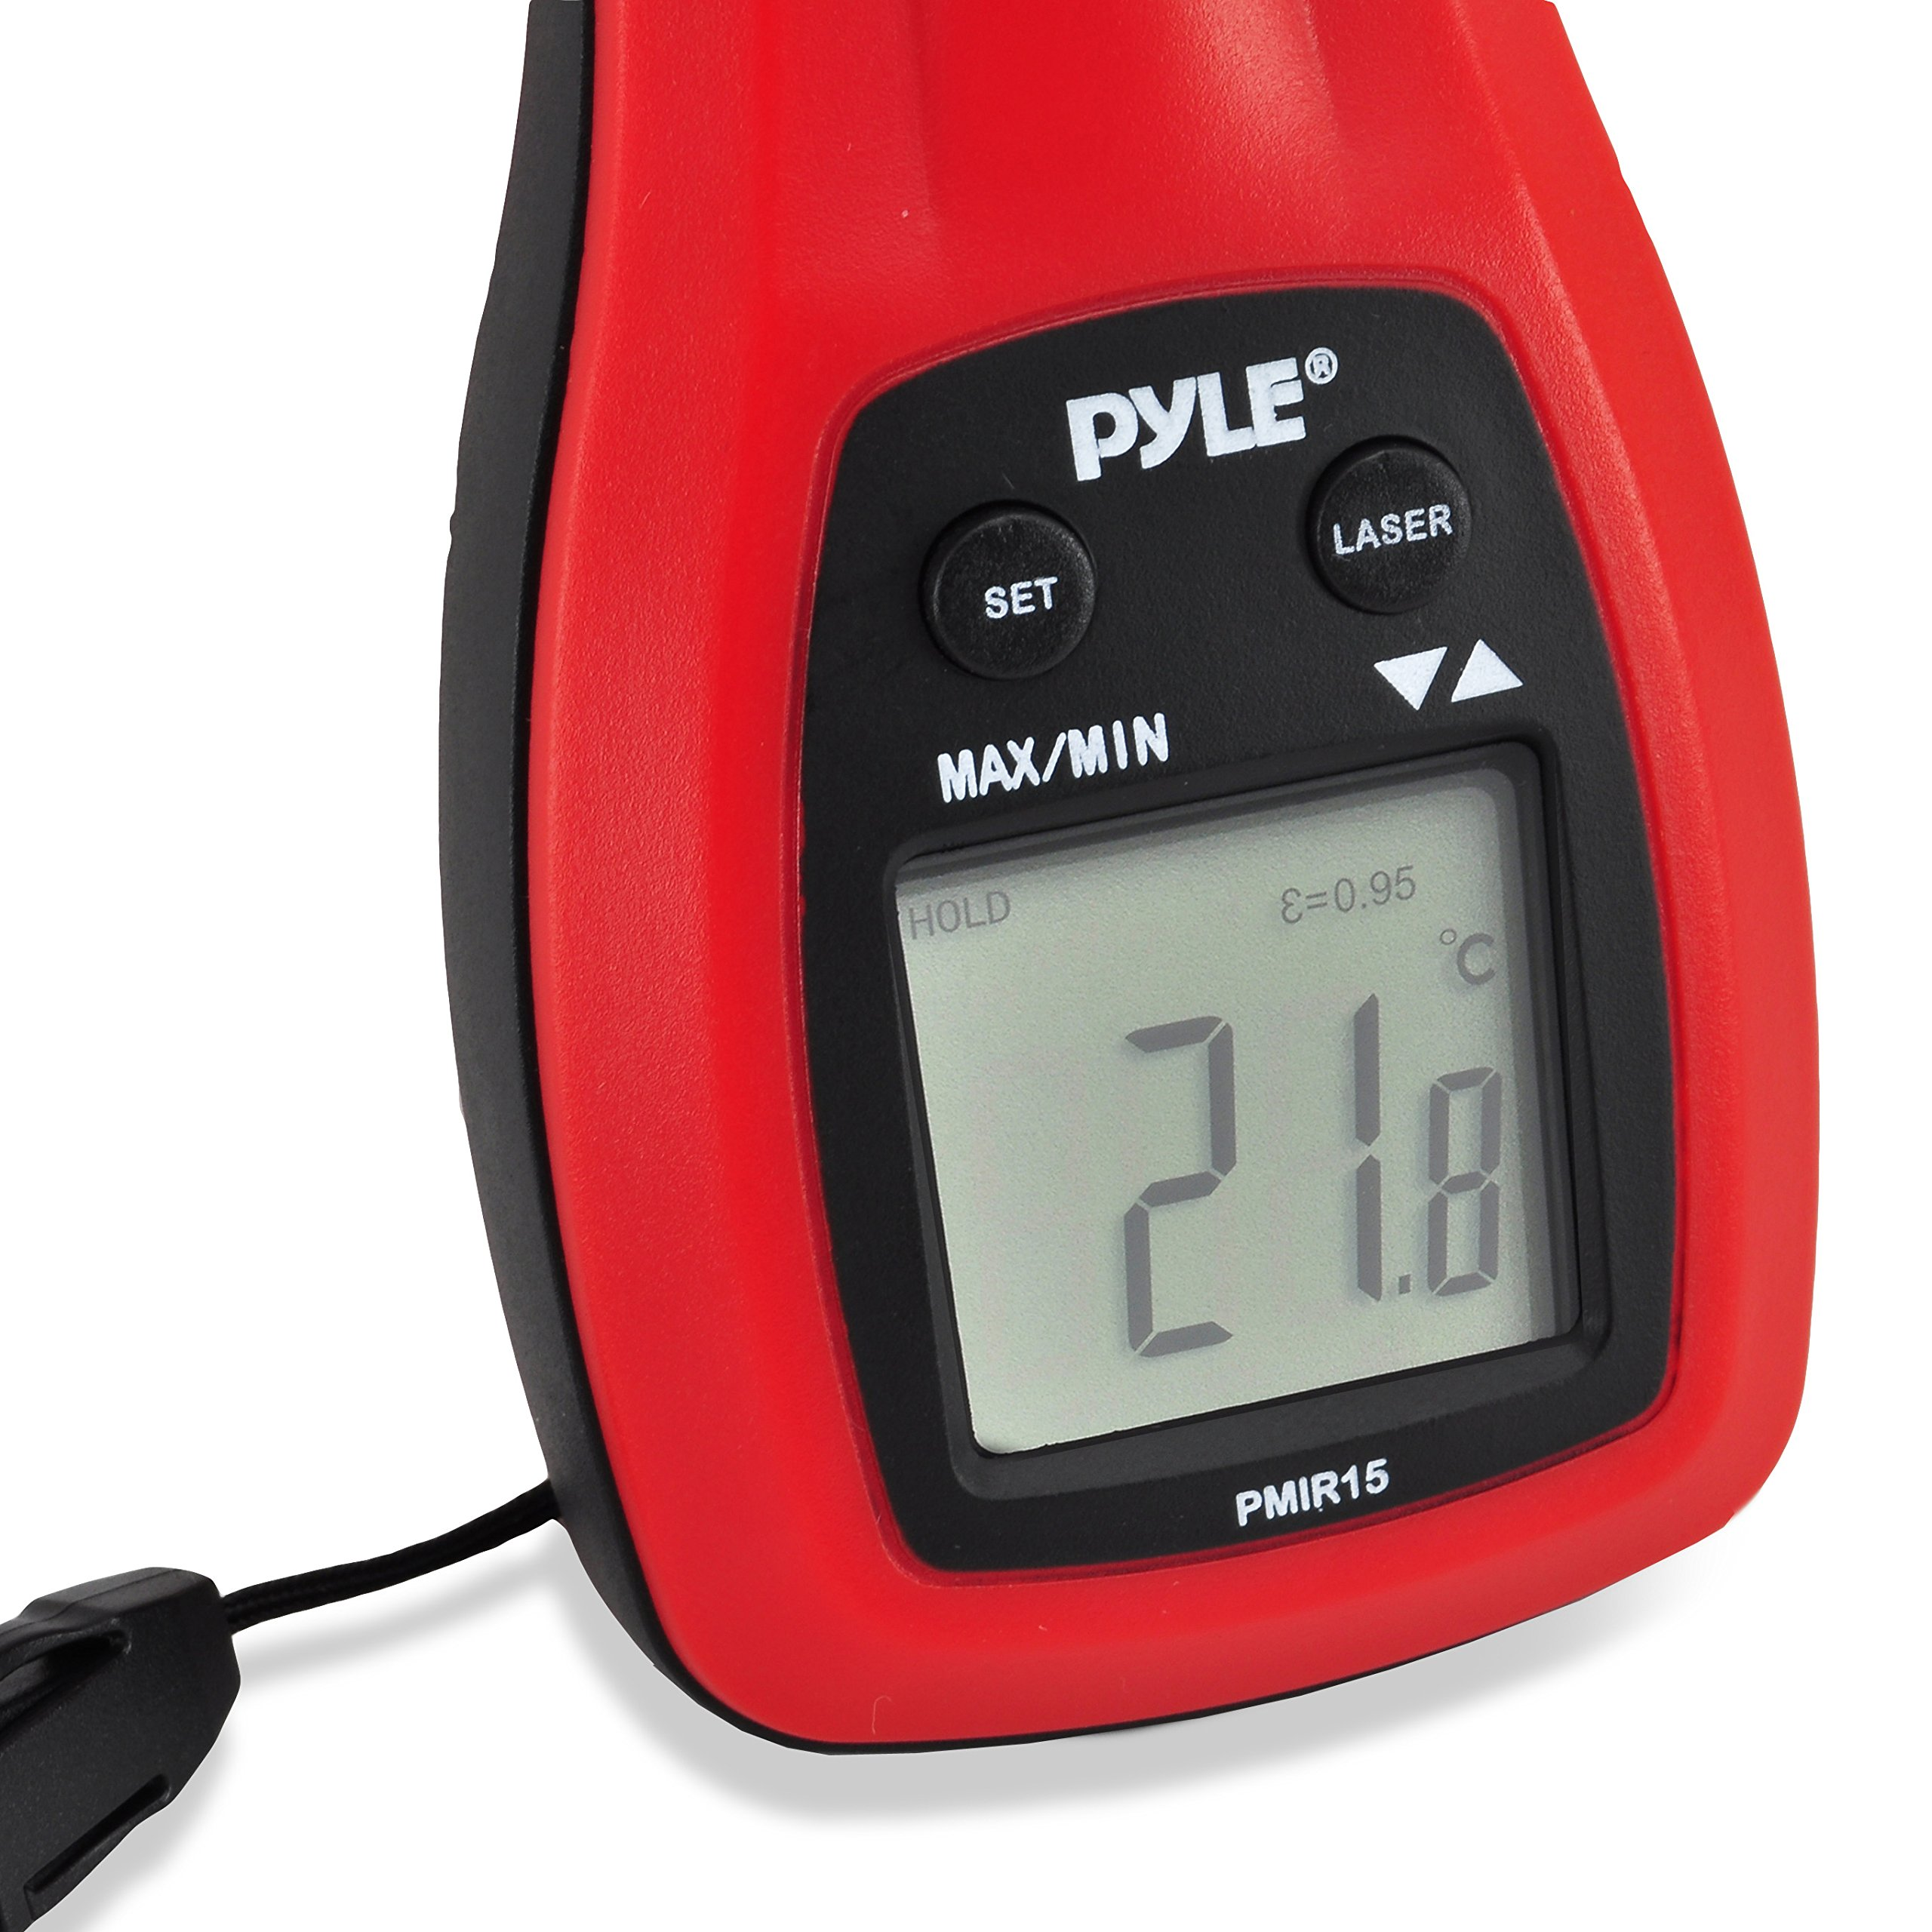 PYLE Meters PMIR15 Mini Infrared Thermometer with Laser Pointer by Pyle (Image #4)